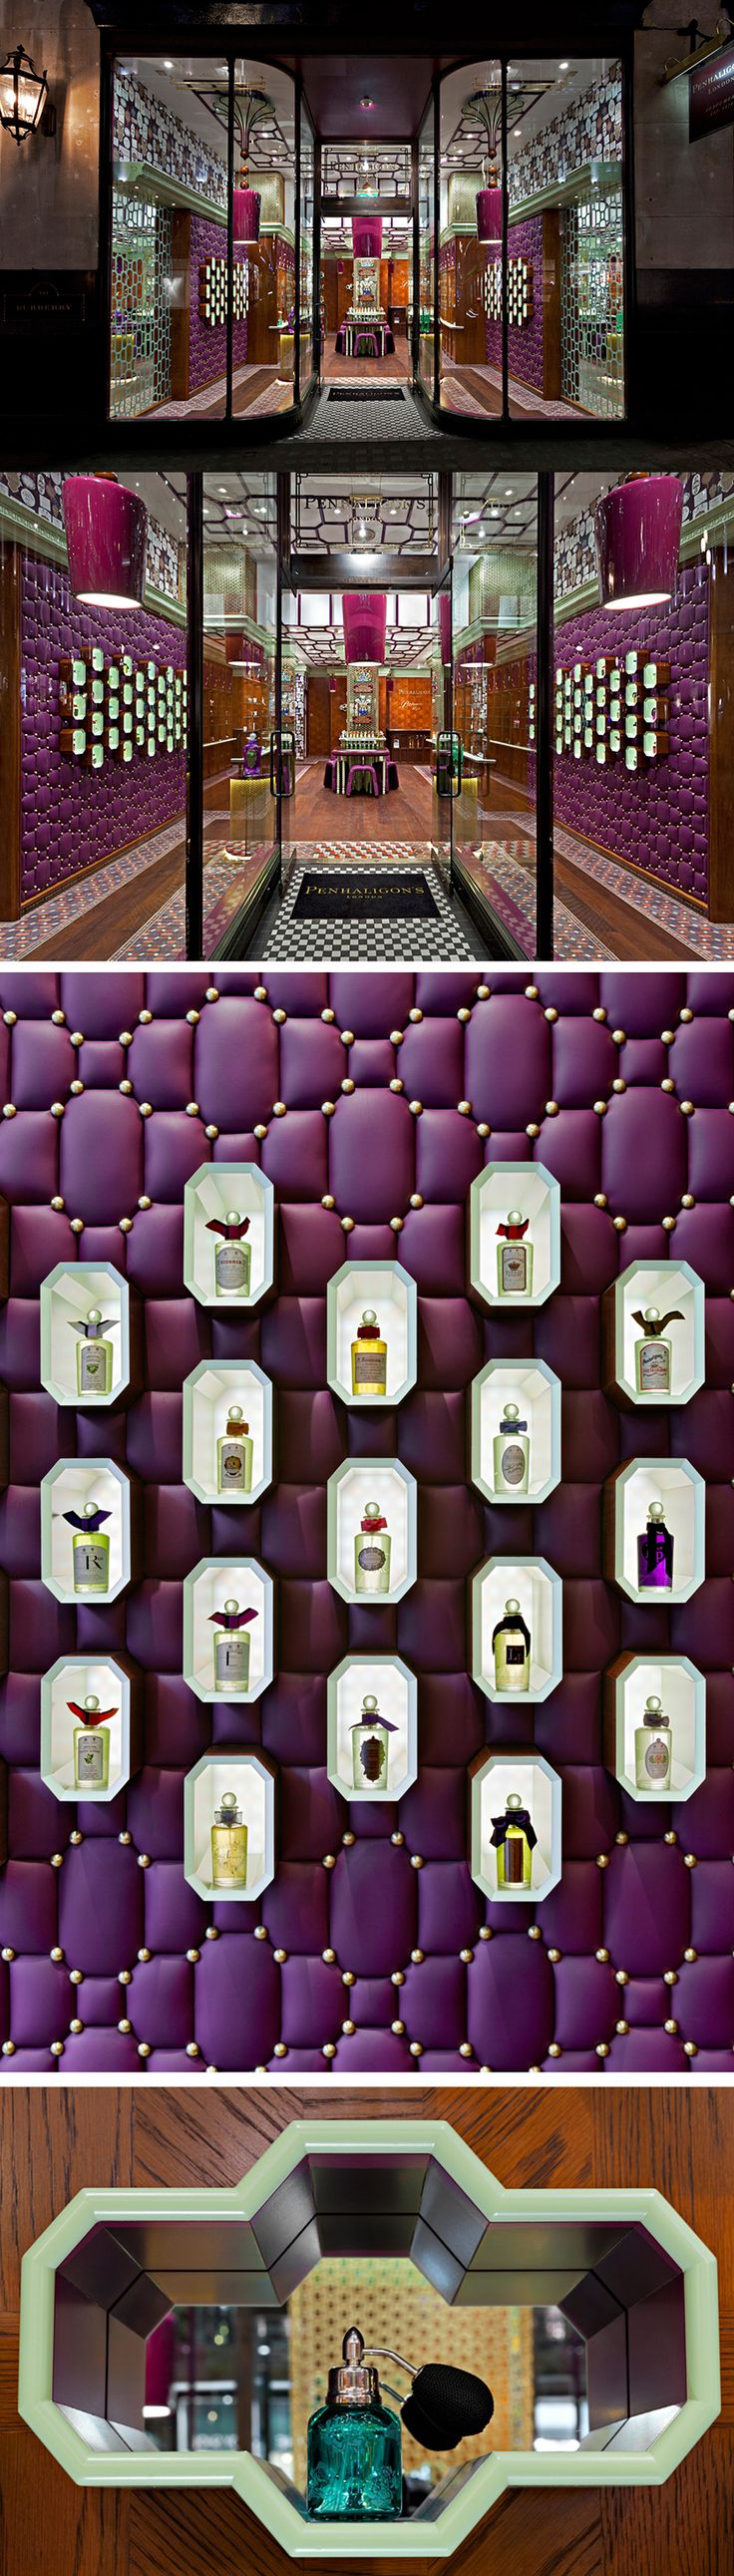 Penhaligon's London_Regent Street by Christopher Jenner